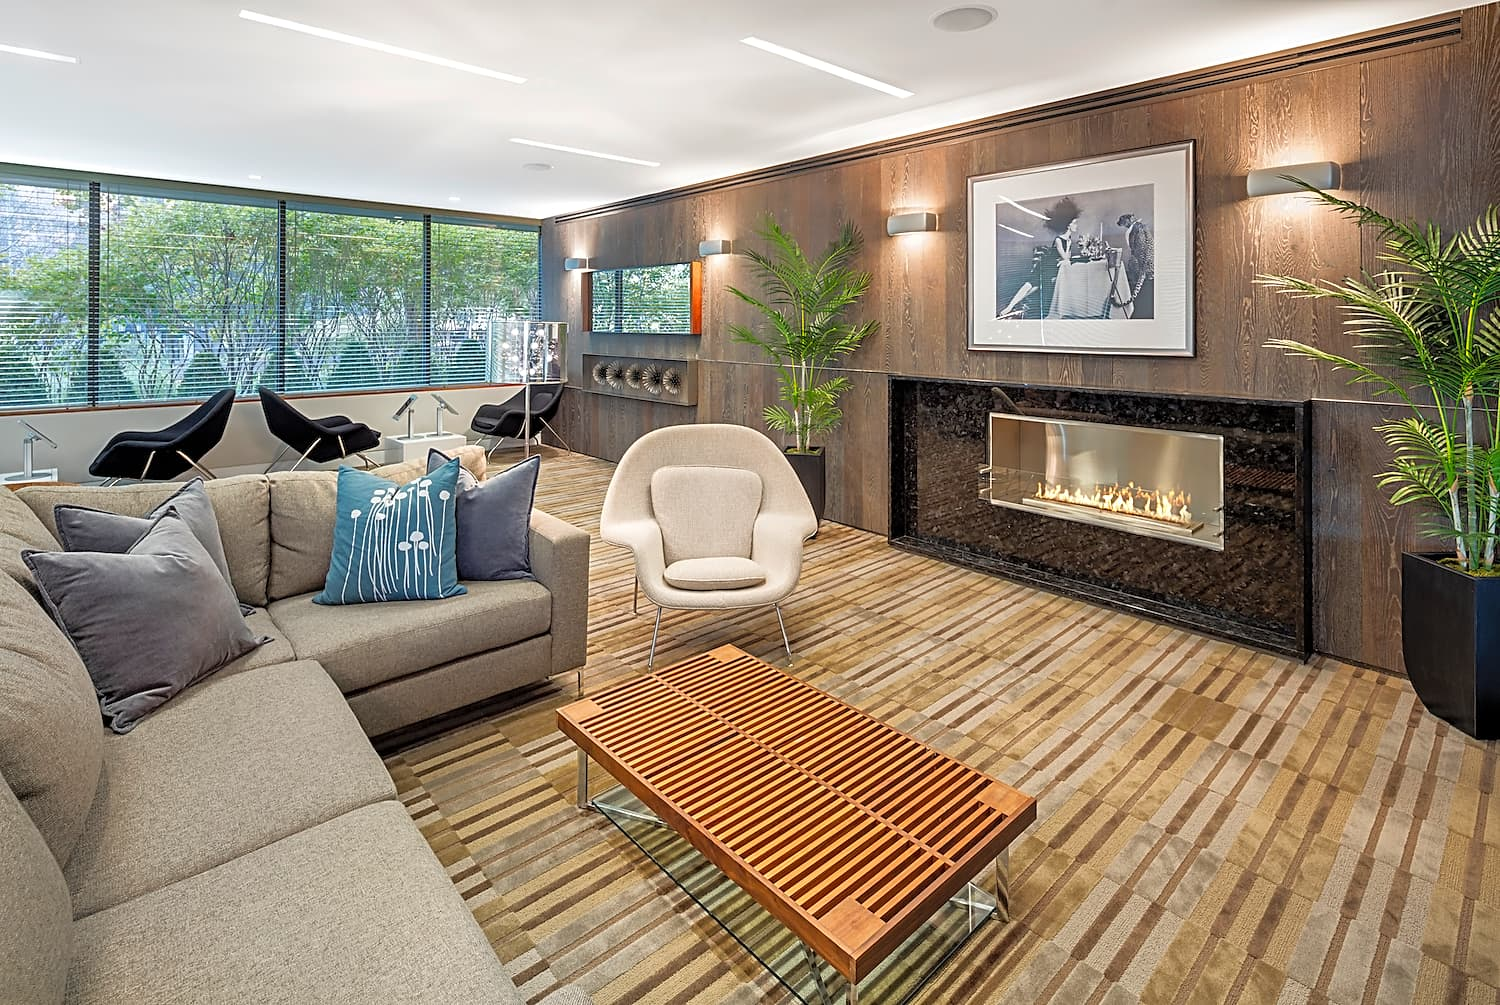 The Club Lounge at The Metro by GDC in White Plains, NY